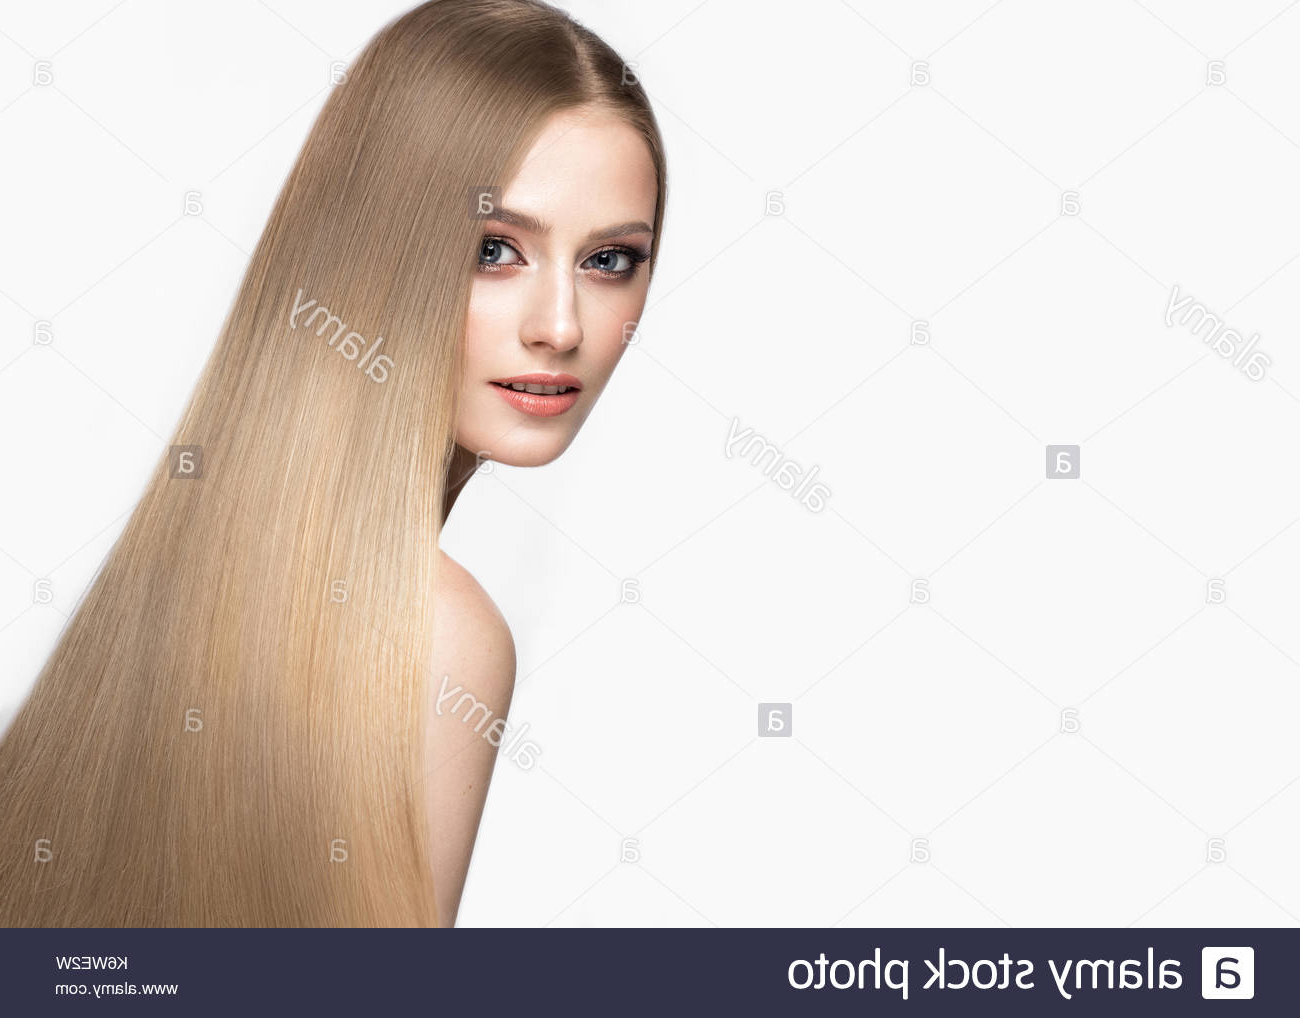 Locks Love Hair Stock Photos & Locks Love Hair Stock Images Intended For 2019 Low Haloed Braided Hairstyles (Gallery 8 of 20)